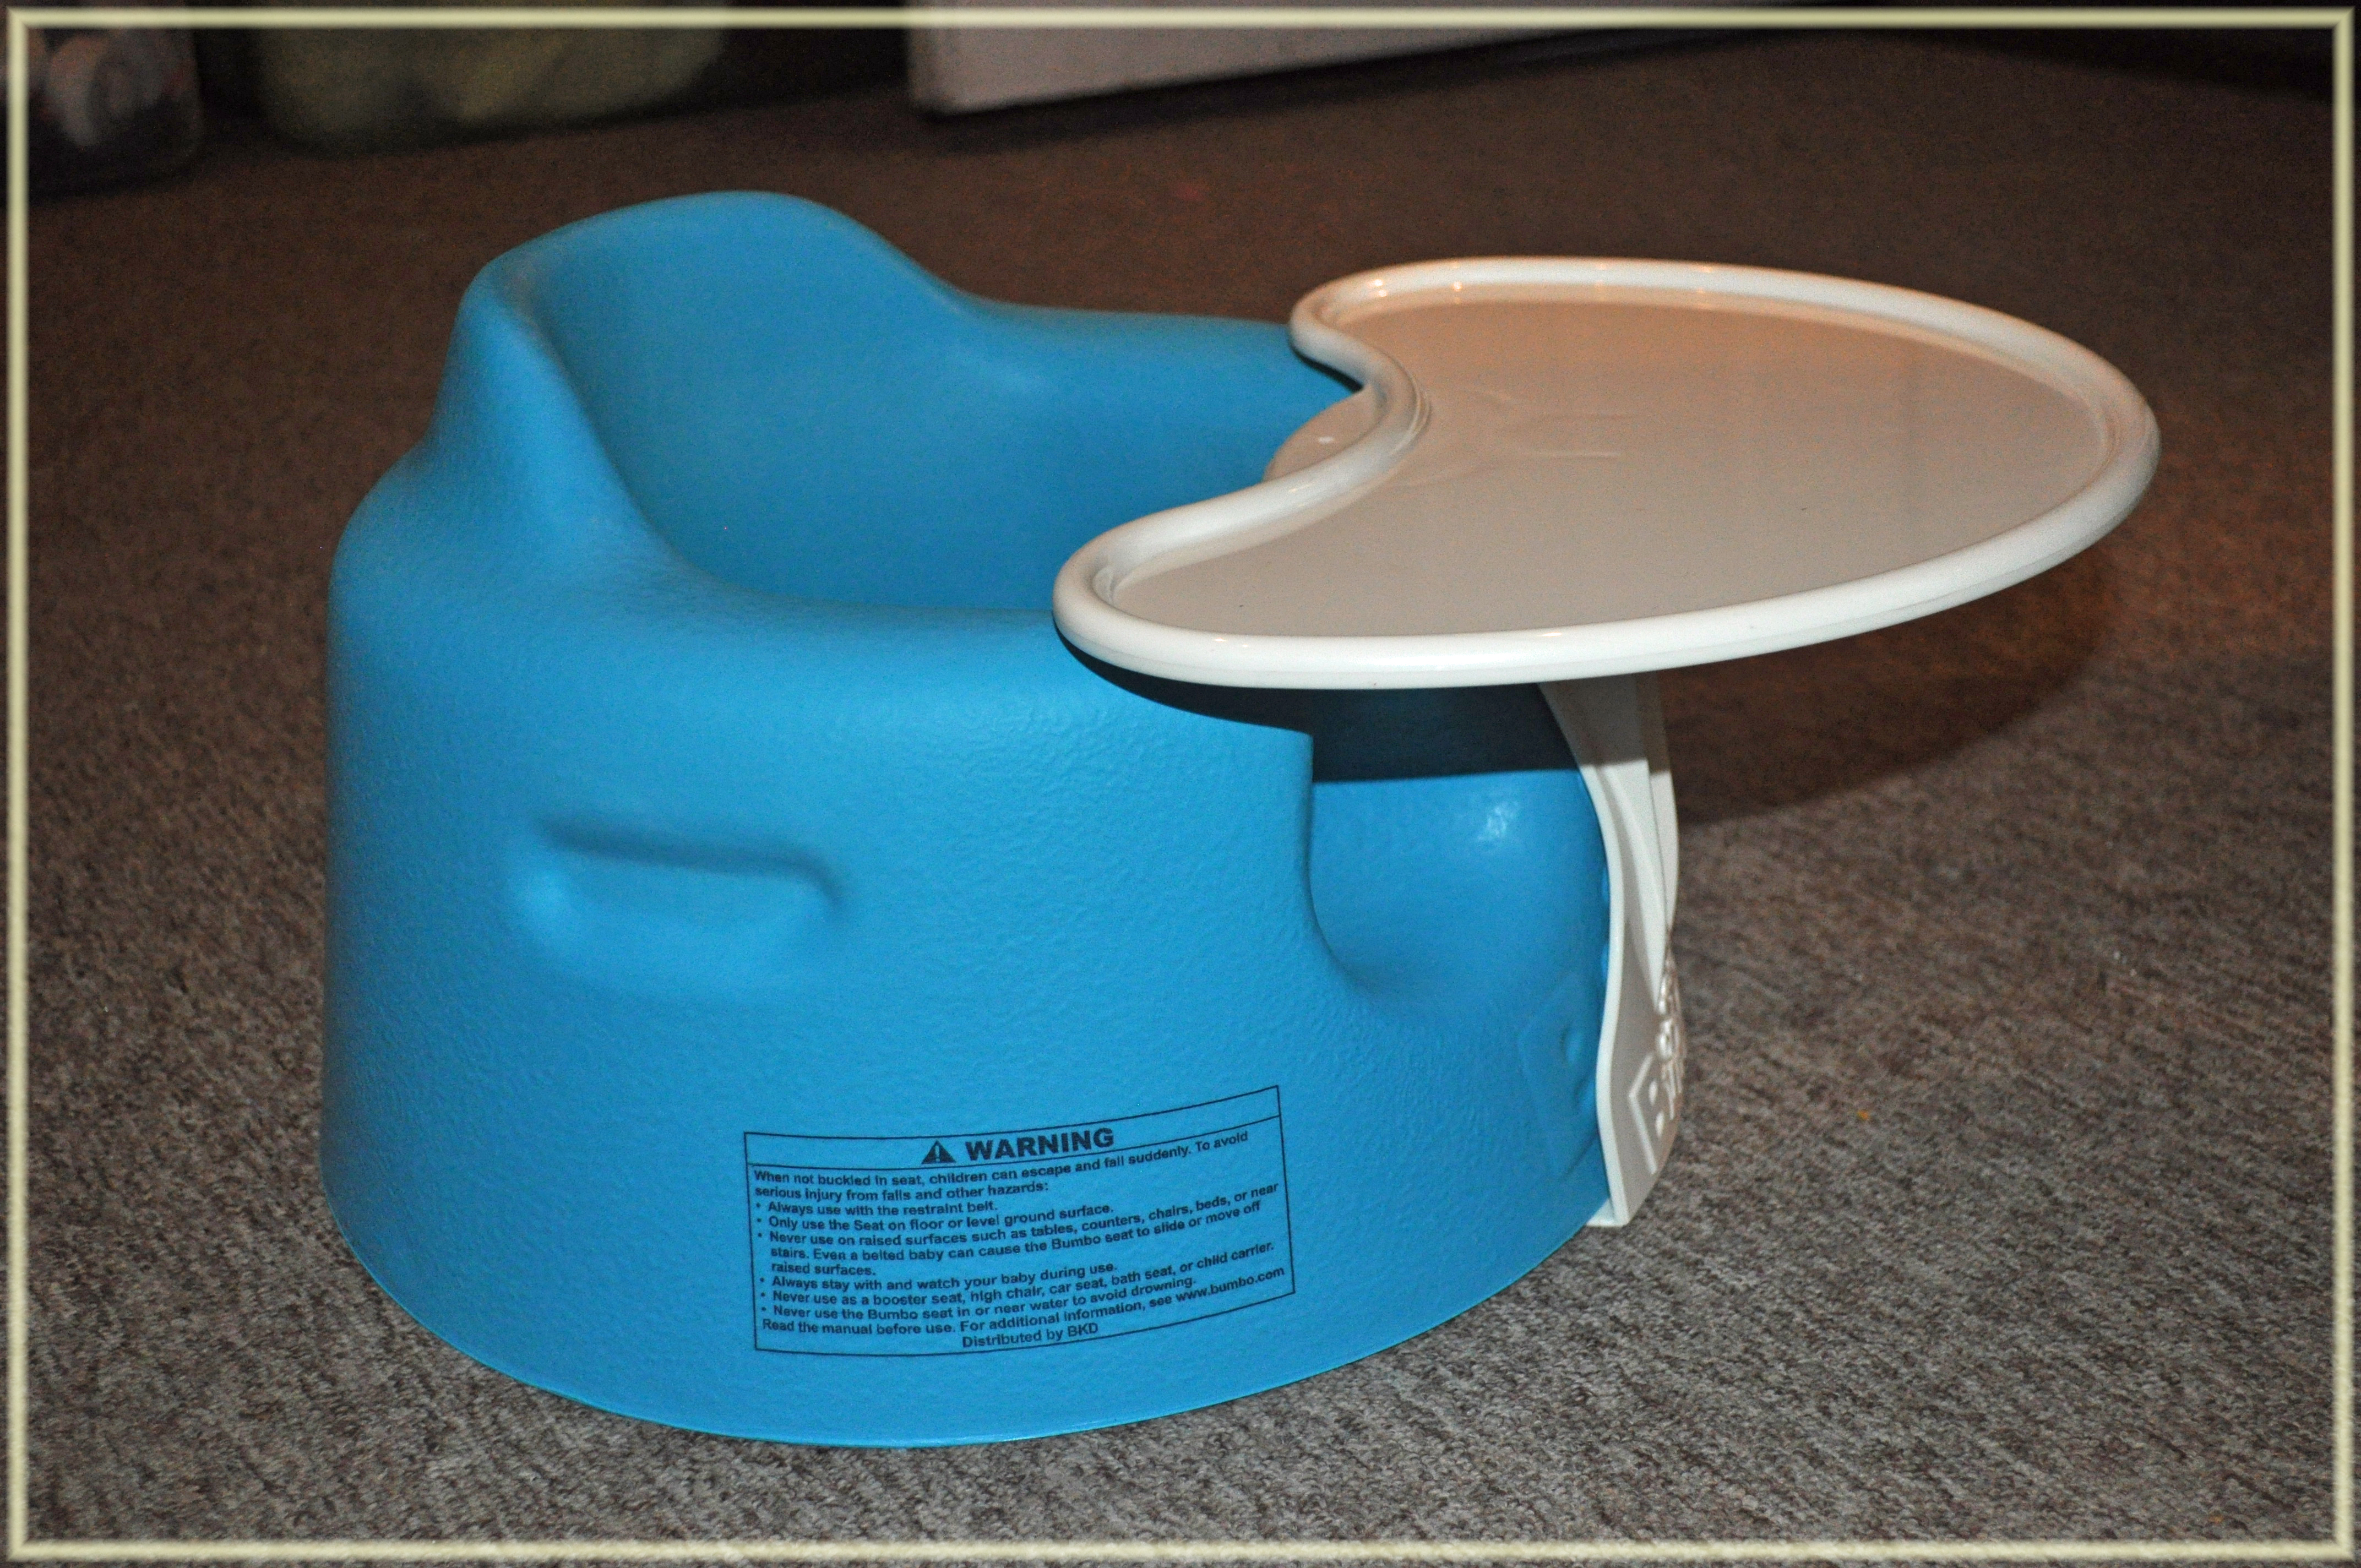 Baby Must Haves | Bumbo Floor Seat With Play Tray